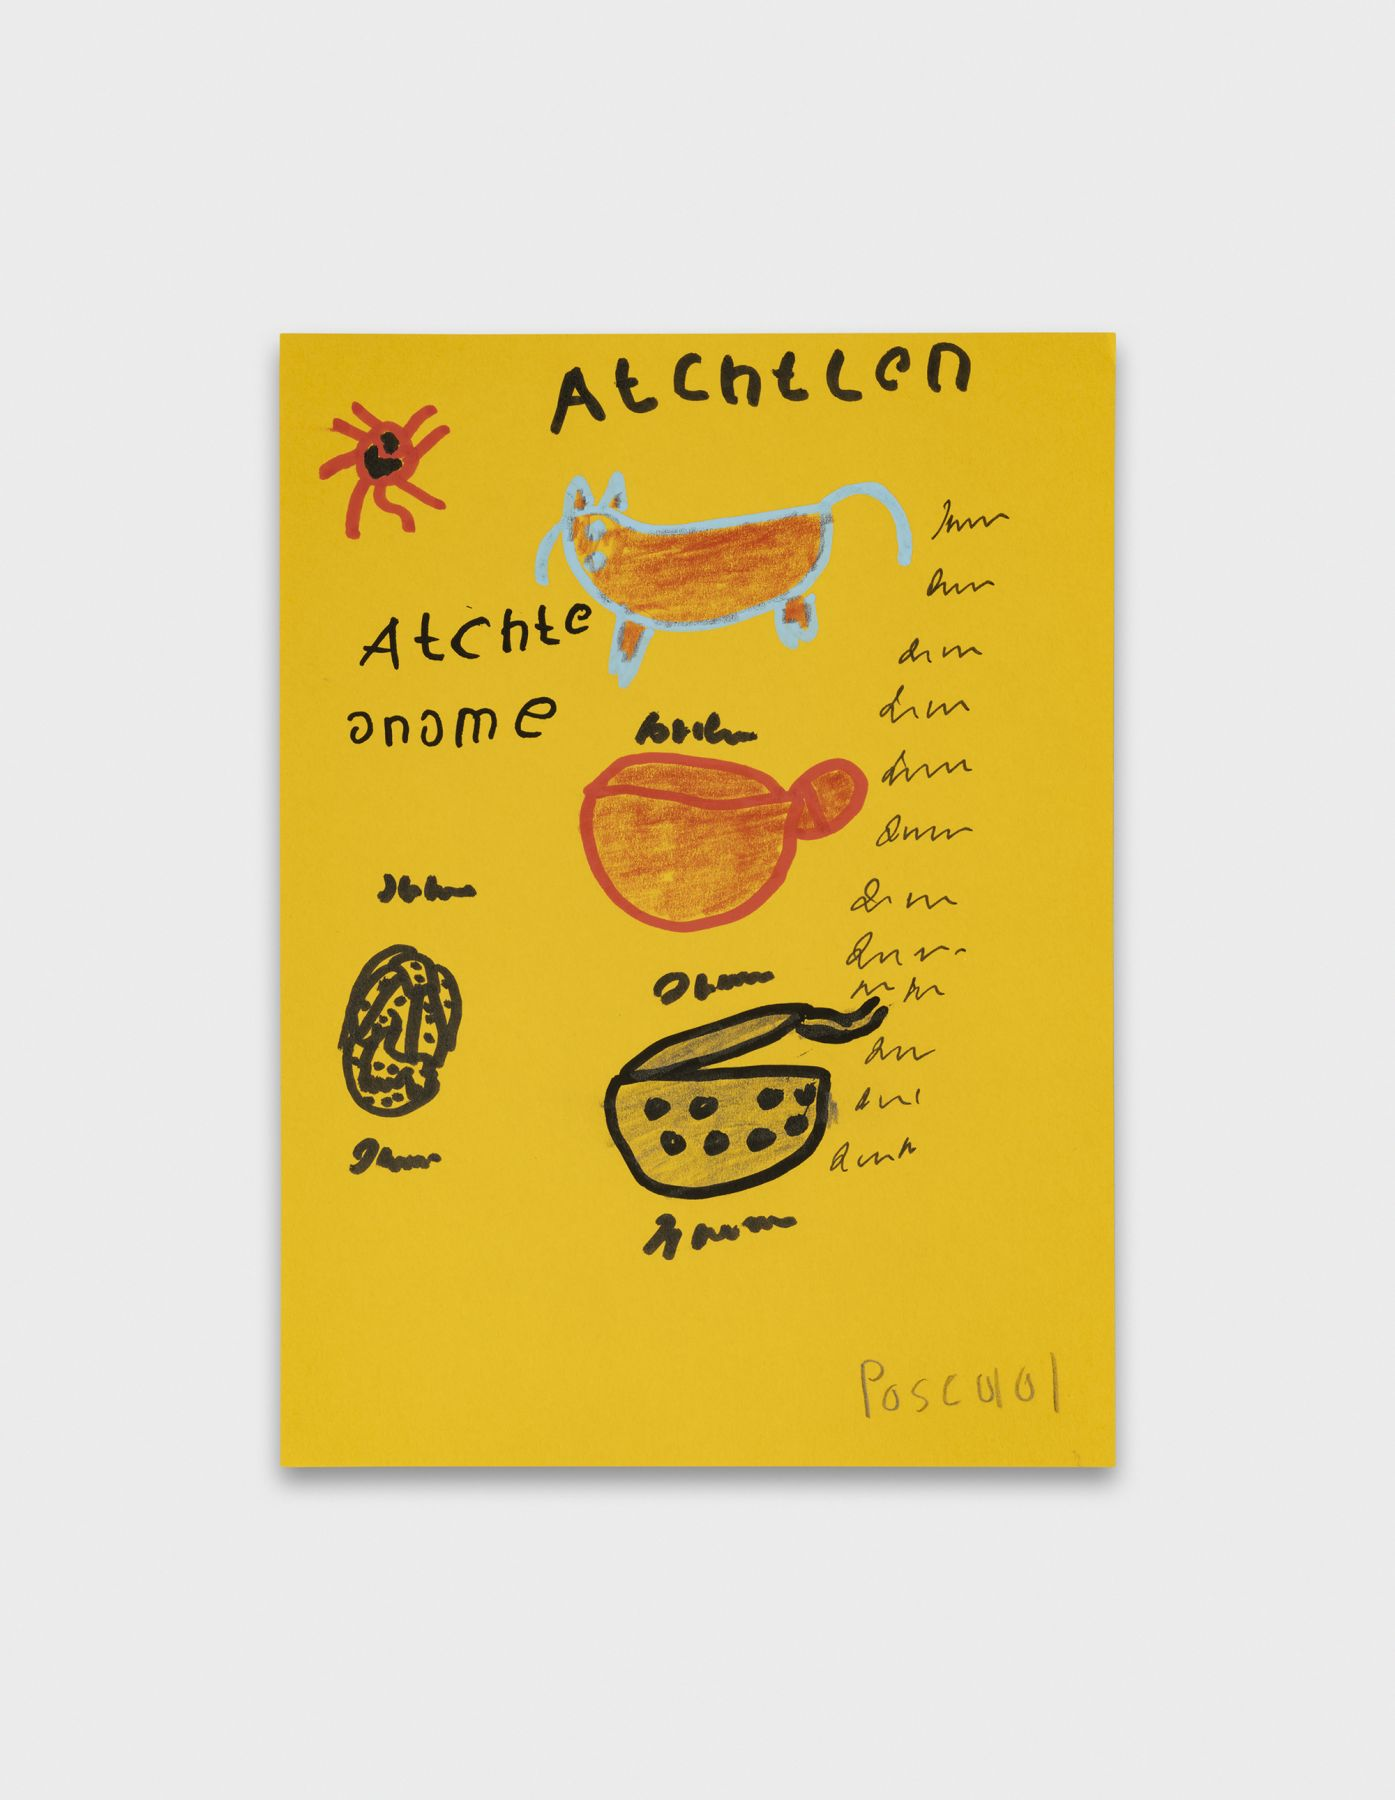 Pascal Vonlanthen T_Atchtlen, 2021 Acrylic markers and pencil on yellow paper 20 x 14,7 cm Image © Julien Gremaud